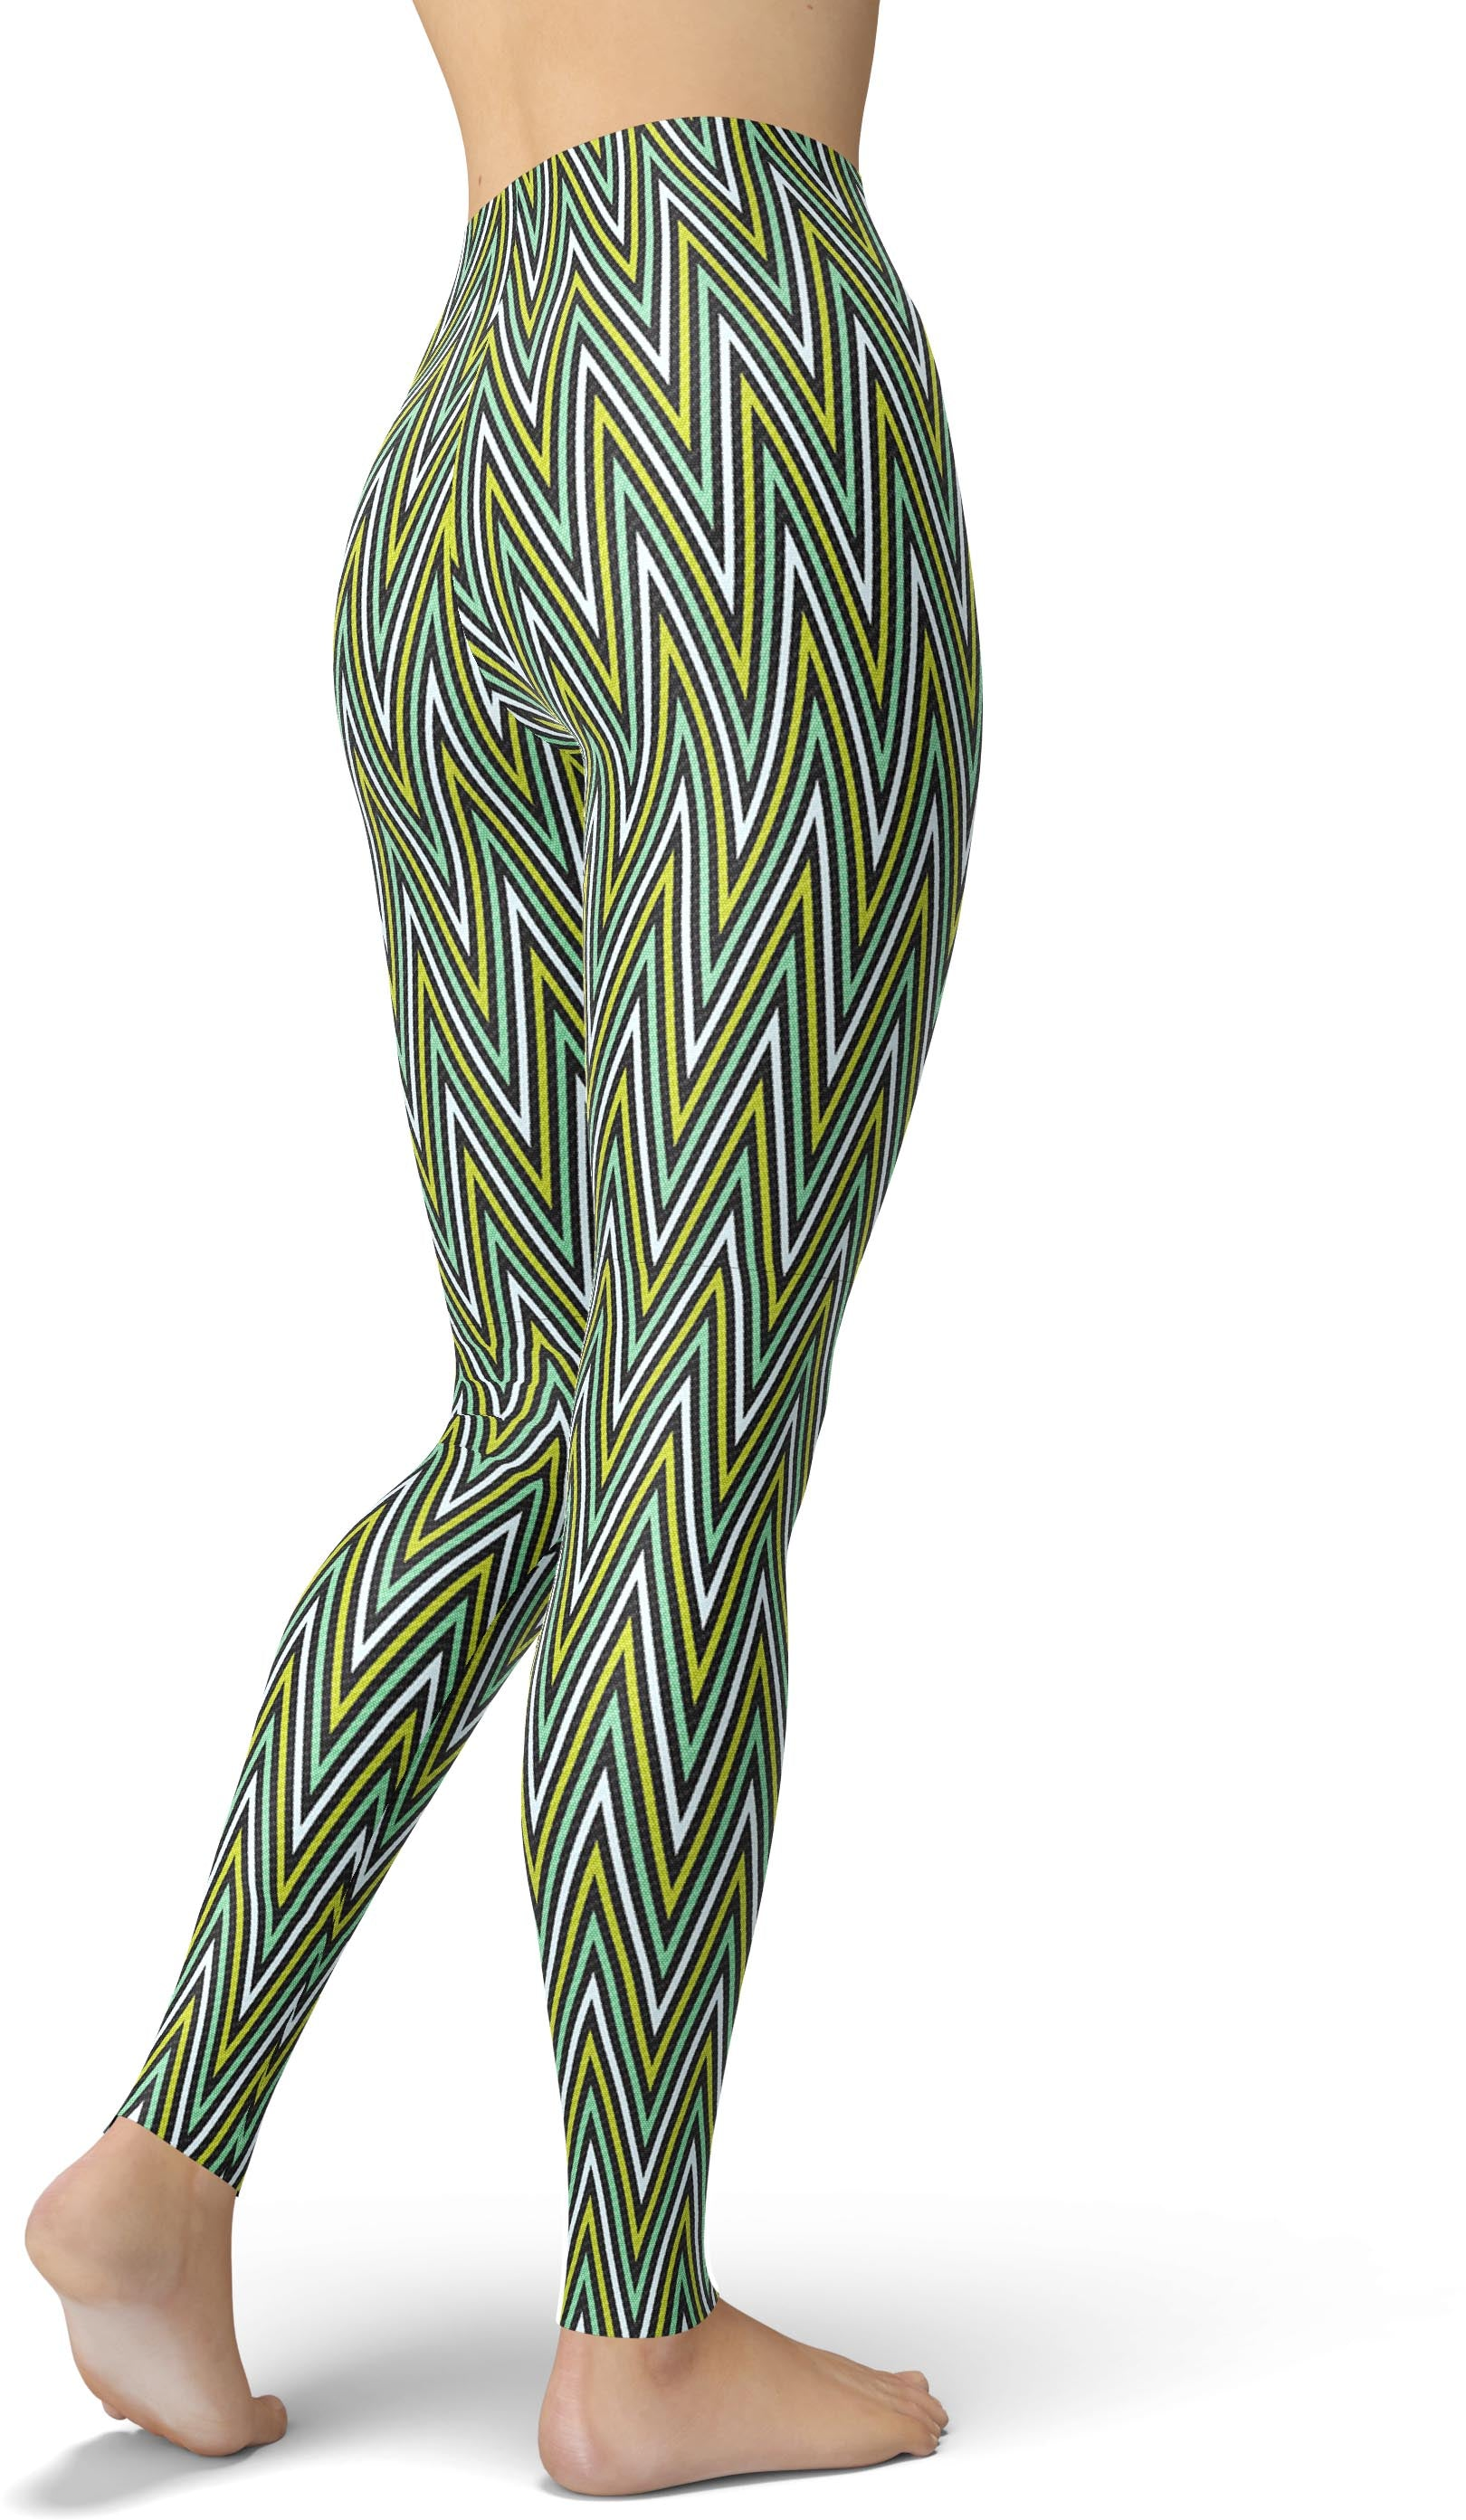 Green & Black Geometric Chevron Leggings